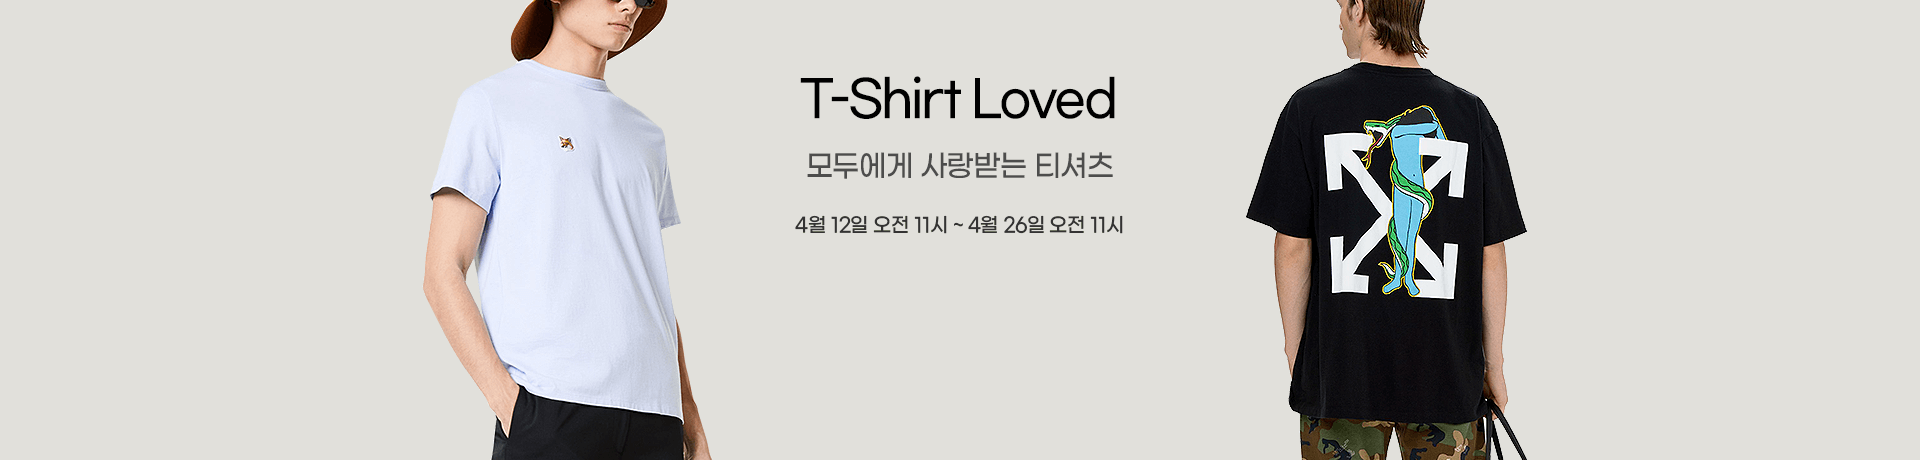 210412_yh_t-shirts-loved_pc_e1e0db